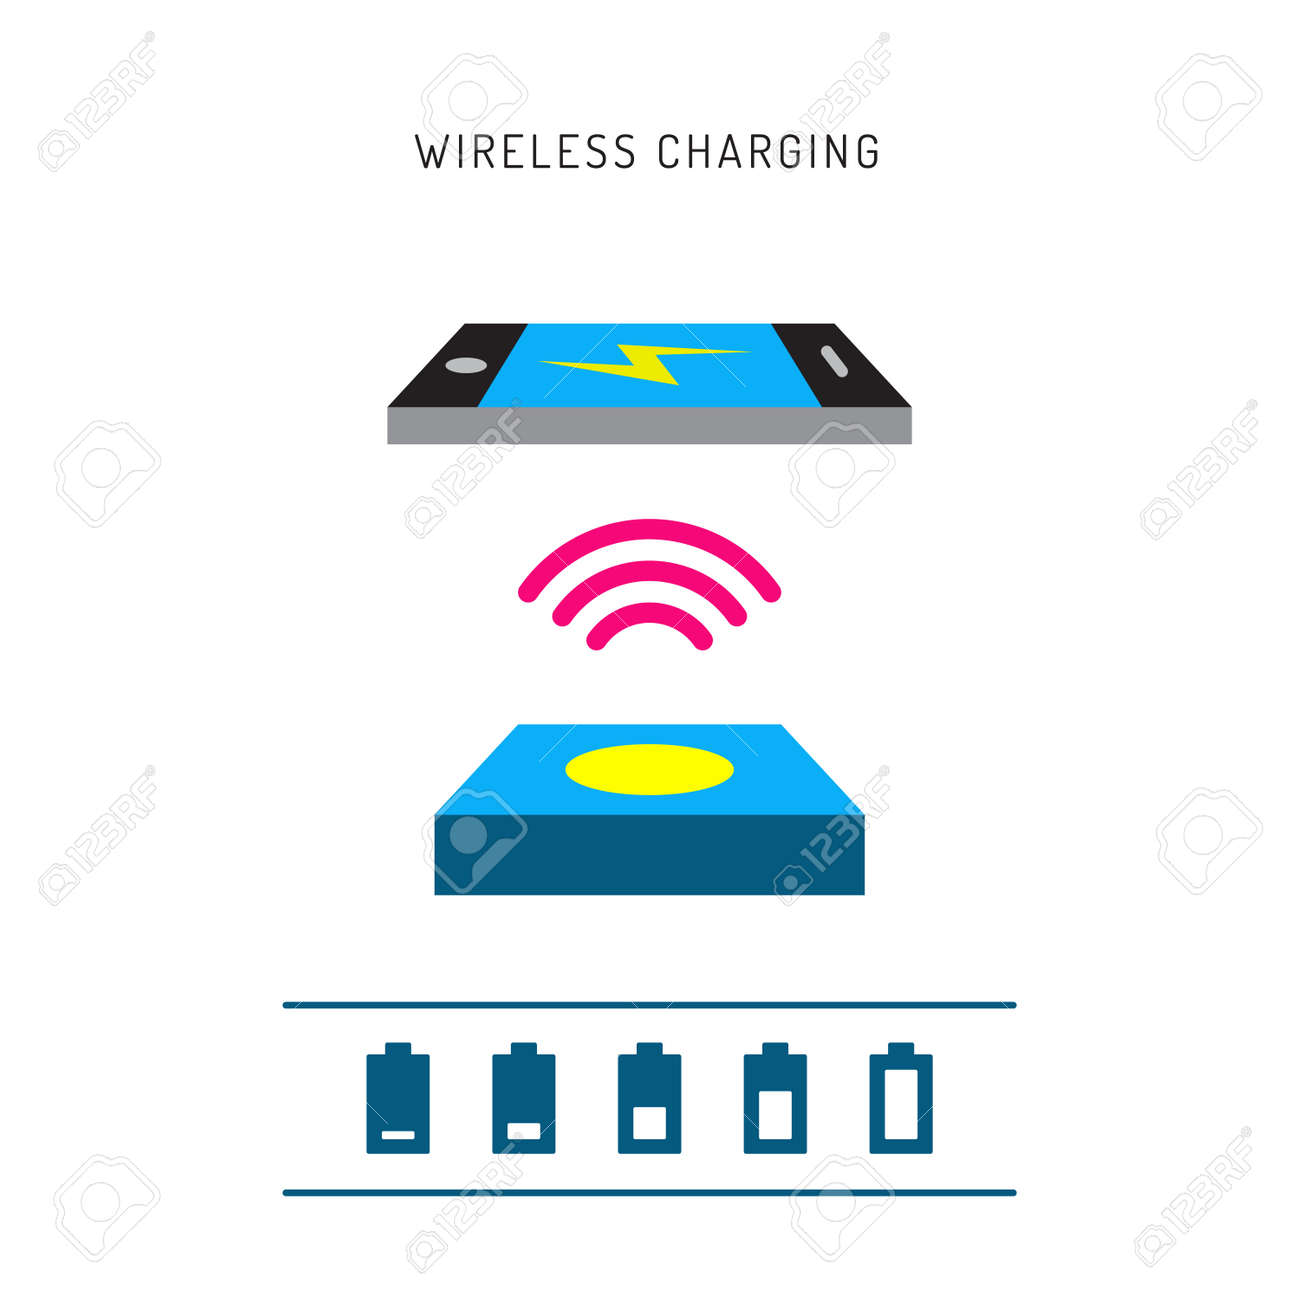 Wireless Battery Charger Wireless Charging Phones Wireless Charging Phones Outline Wireless